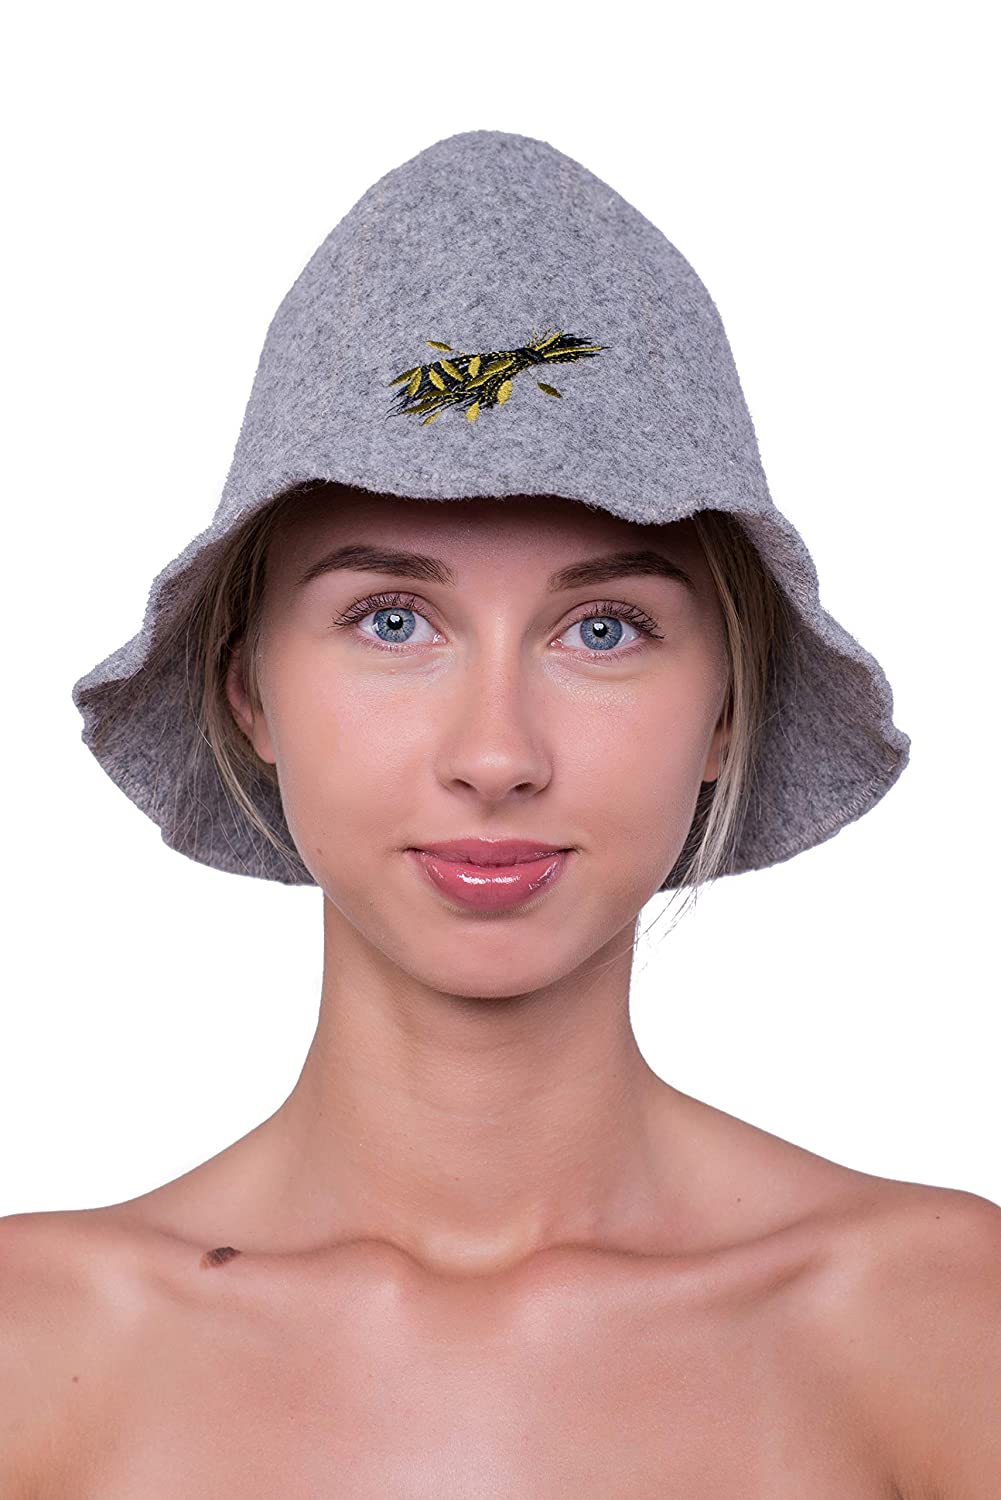 Wellness Cap Premium Quality Bath Broom Ger3as Sauna Hat Wool with Embroidery for Men and Women